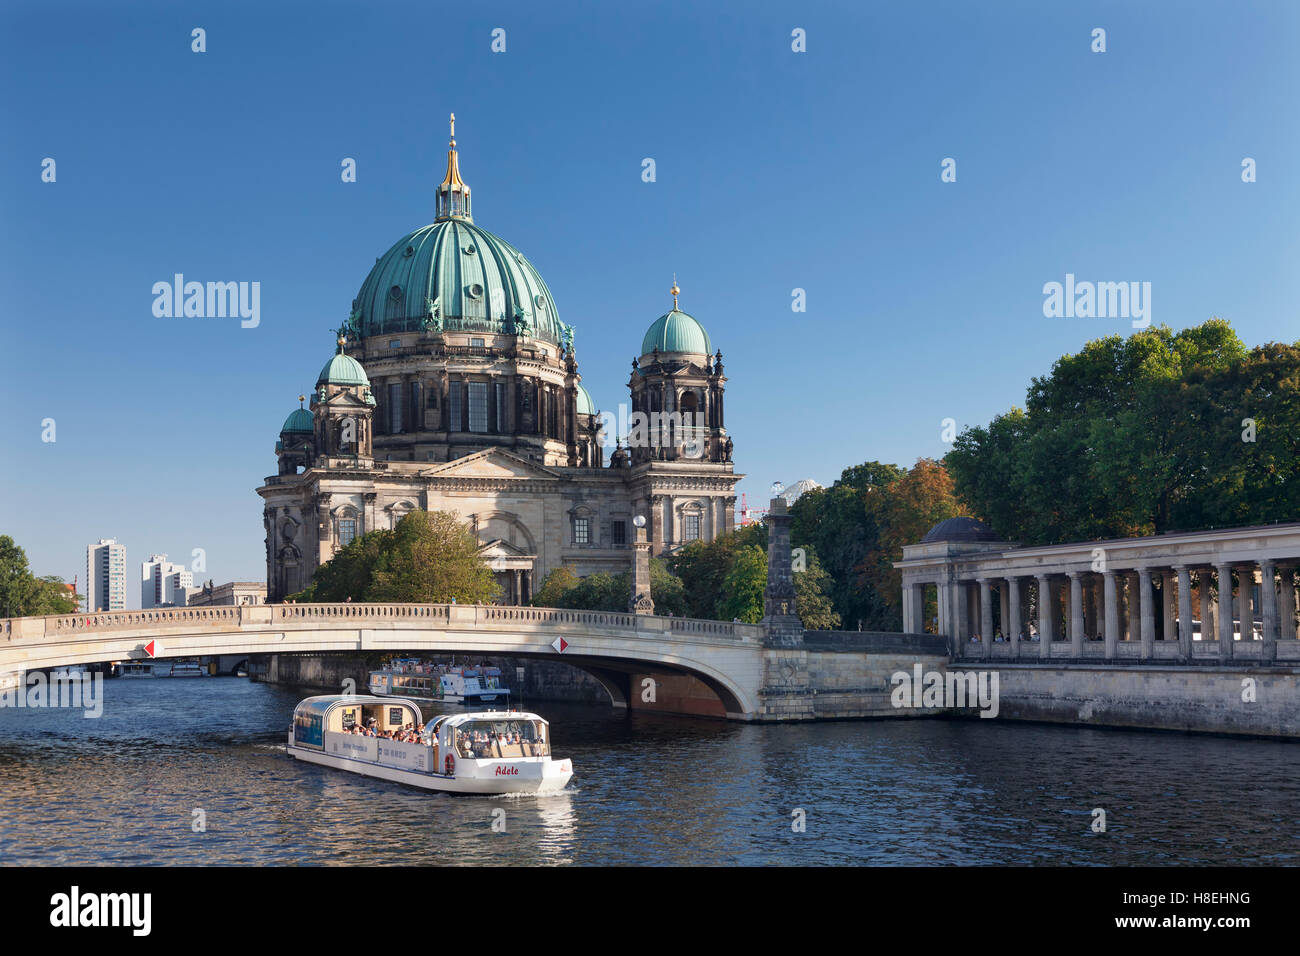 Excursion boat on Spree River, Berliner Dom (Berlin Cathedral), Spree River, Museum Island, UNESCO, Mitte, Berlin - Stock Image